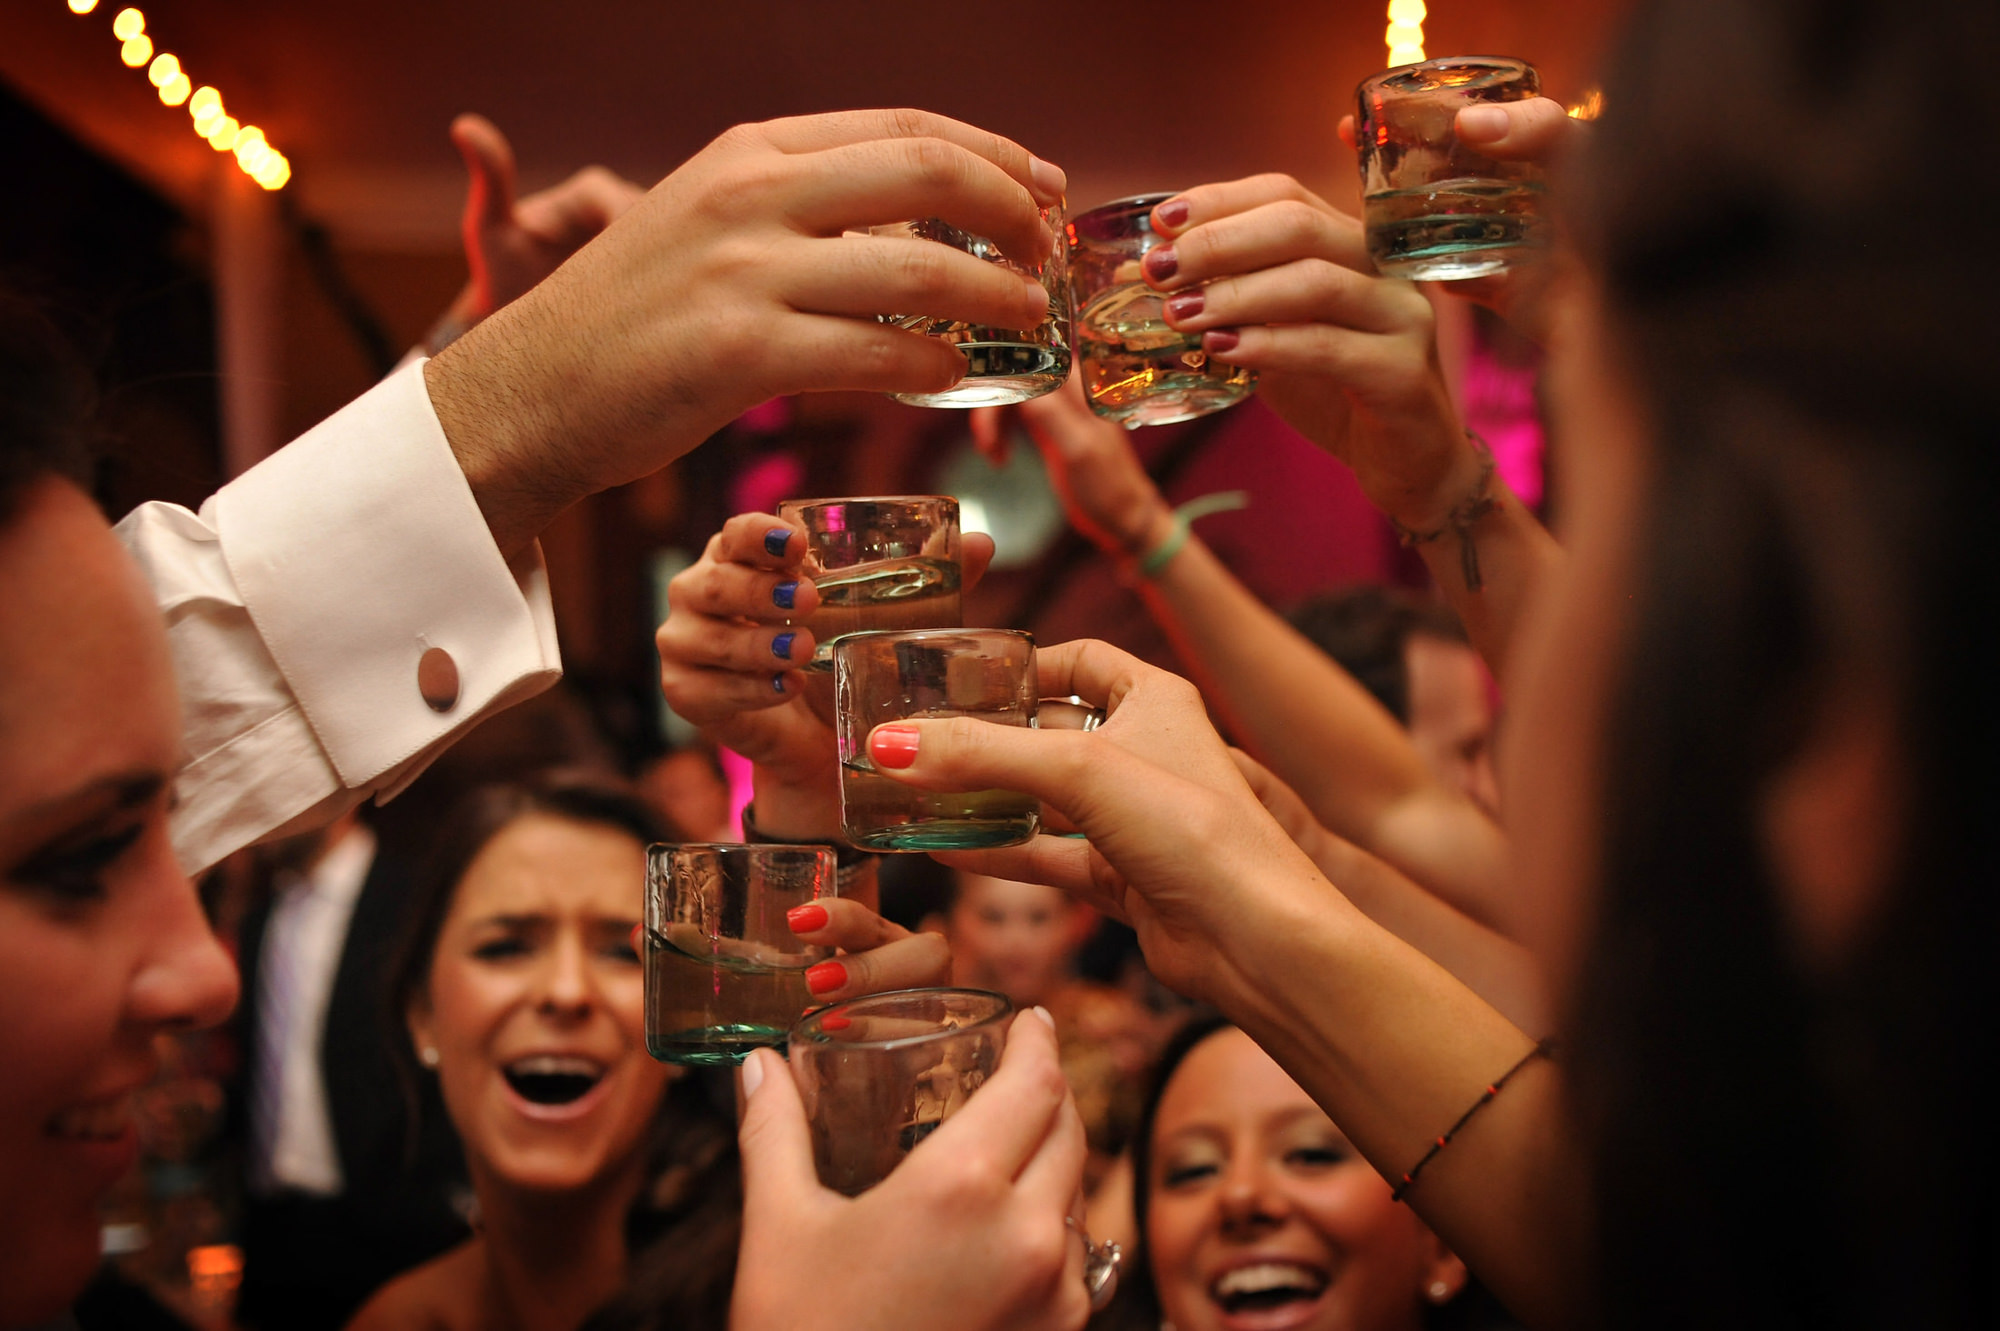 Party toast with shot glasses  - Daniel Aguilar Photographer